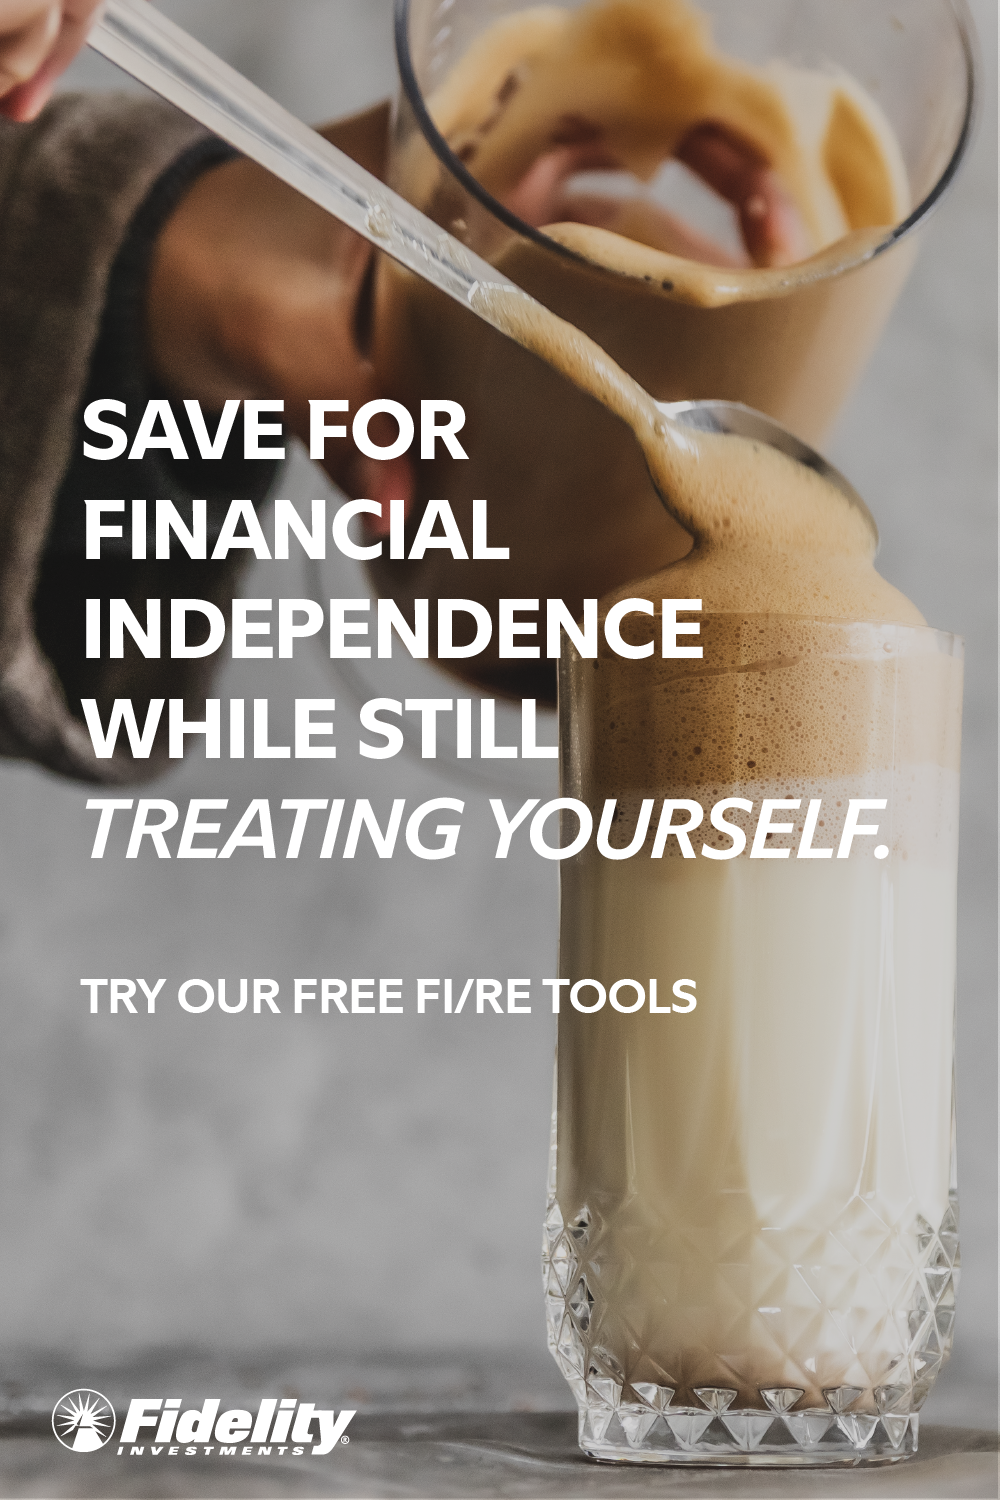 We can help you FI/RE (Financial Independence/Retire Early)